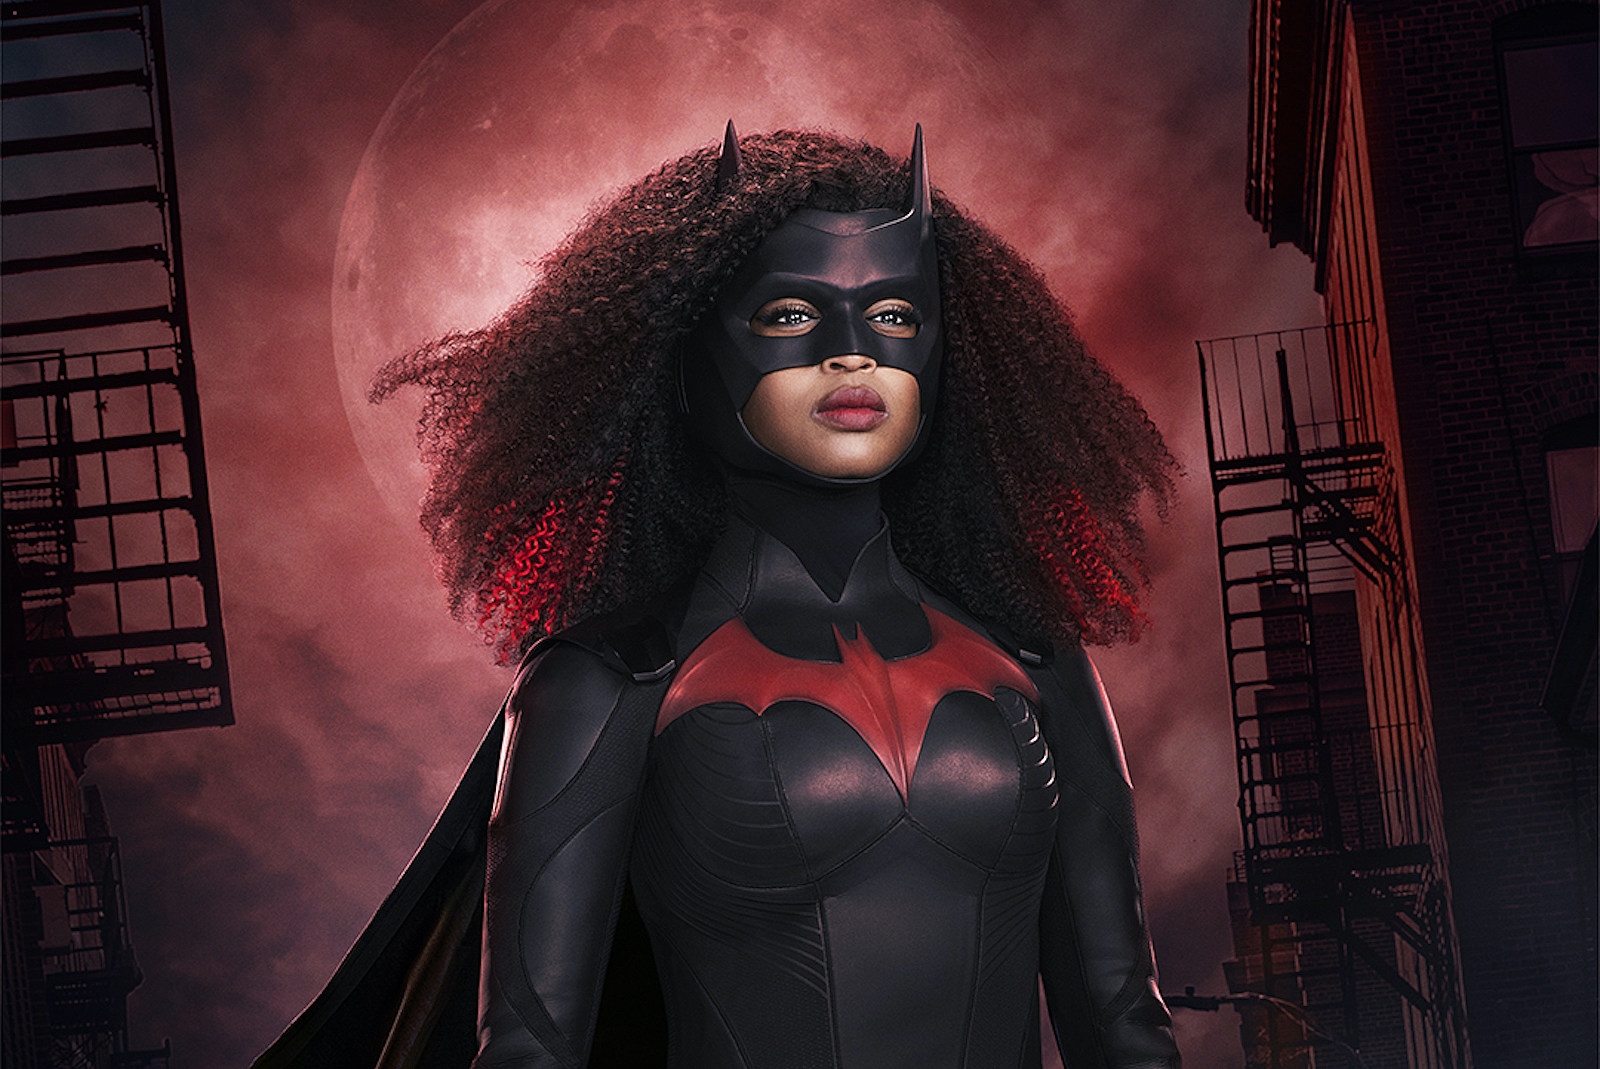 Batwoman Reveals New Suit for Javicia Leslie's Ryan Wilder